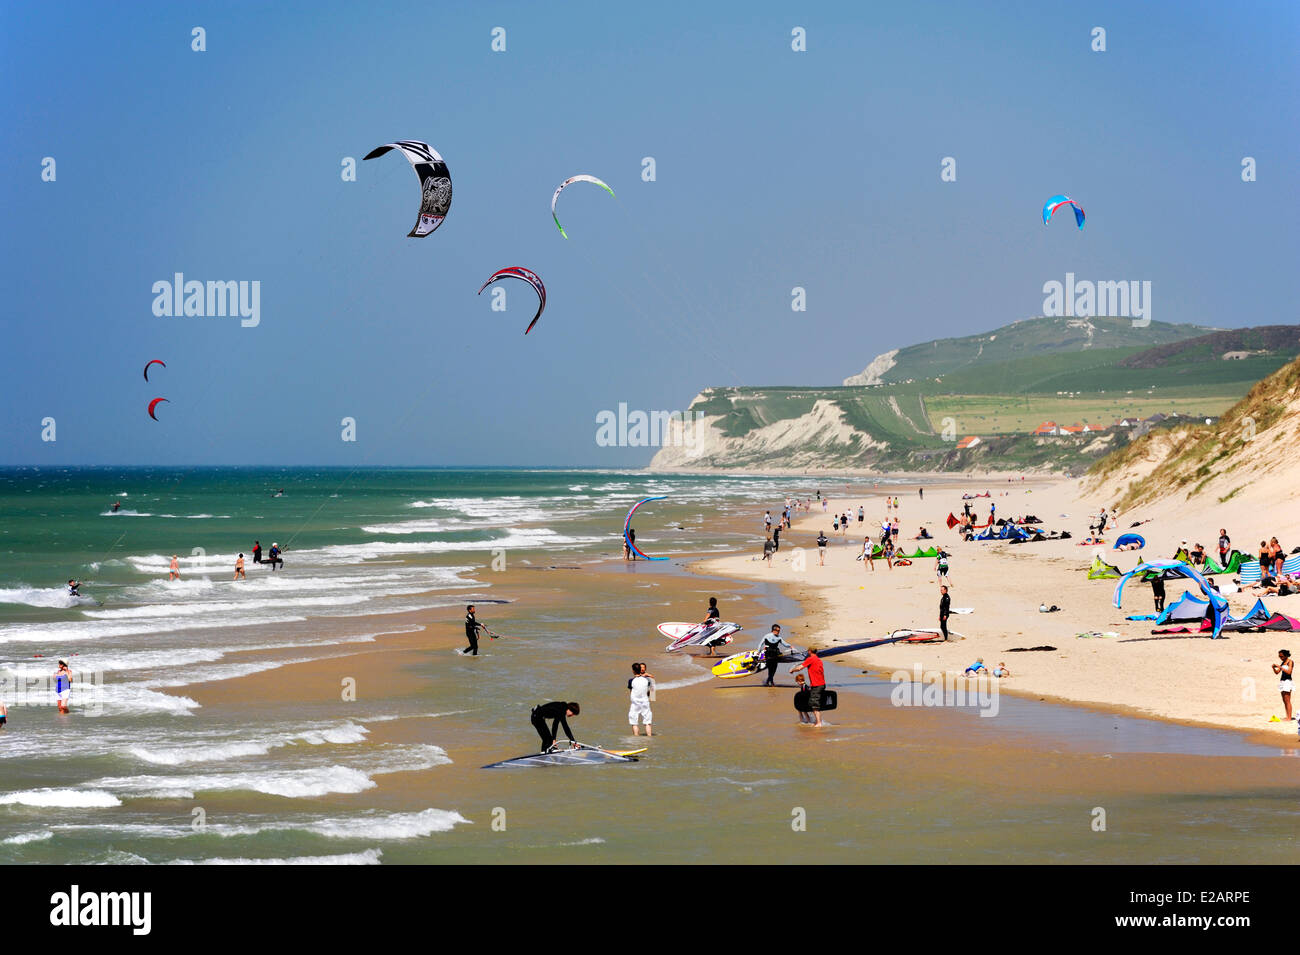 France Pas De Calais Wissant Kitesurfing And Windsurfing At The Stock Photo Alamy